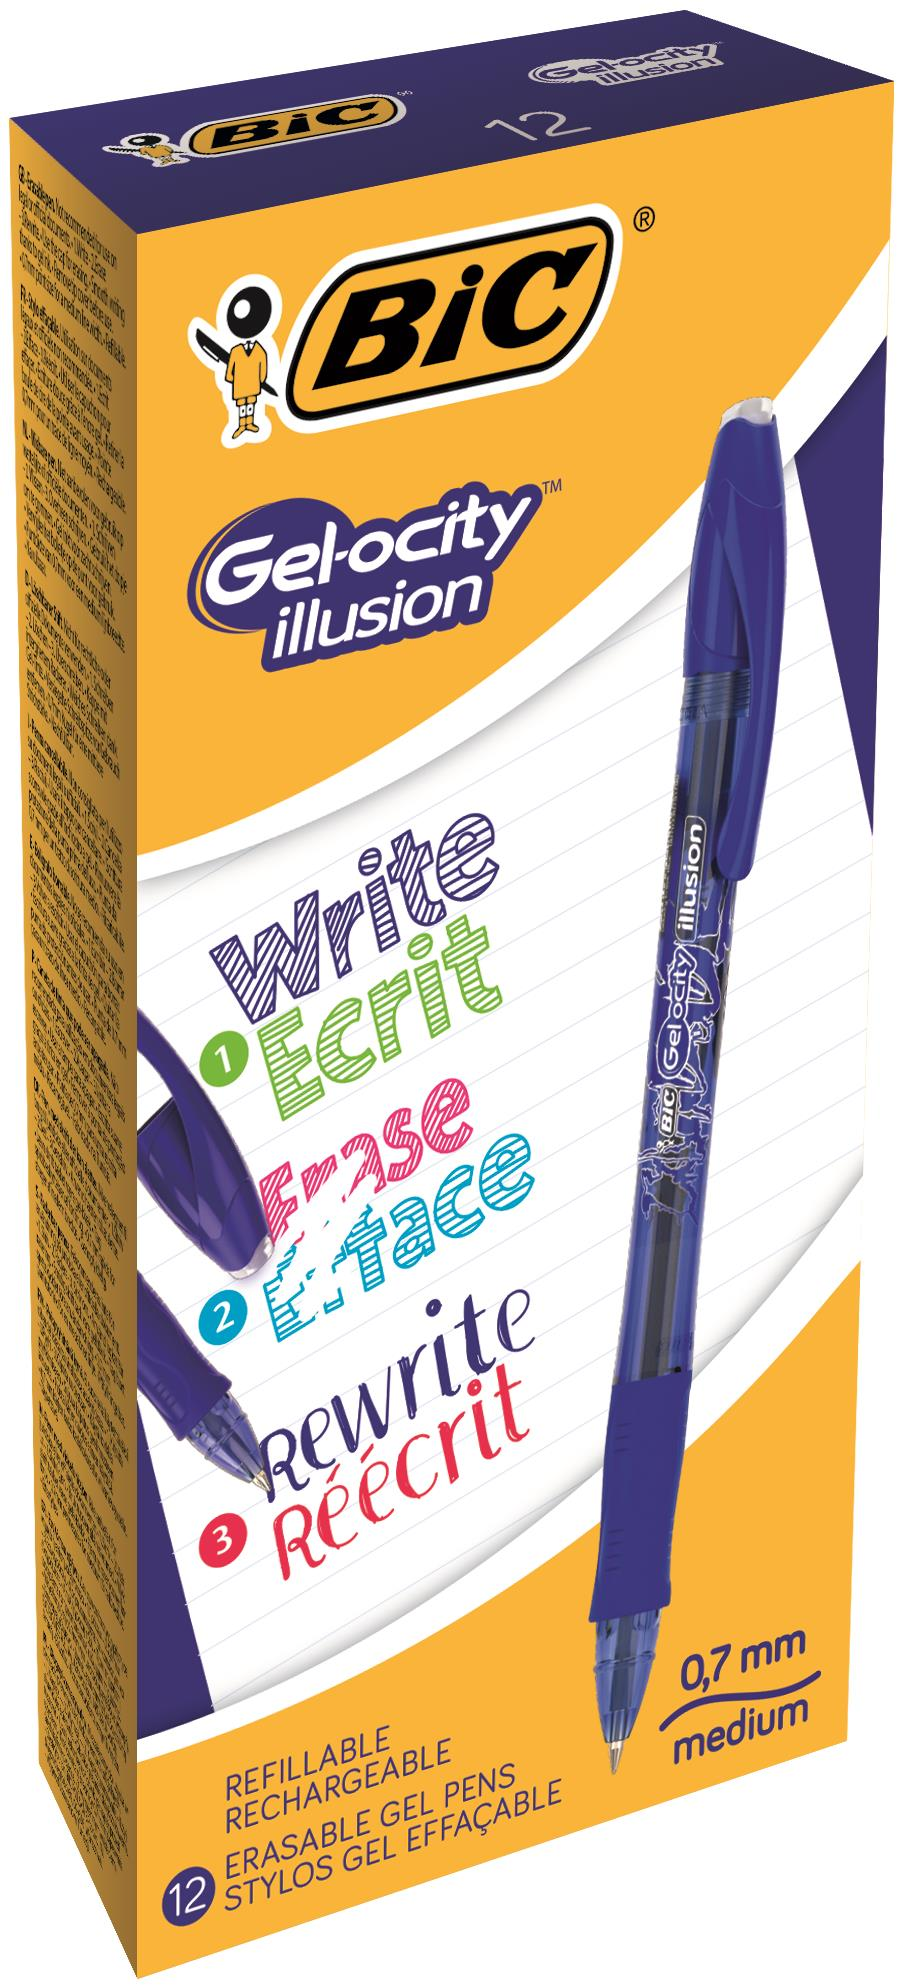 BIC Gelocity Illusion Blue (Pack of 12) 943440